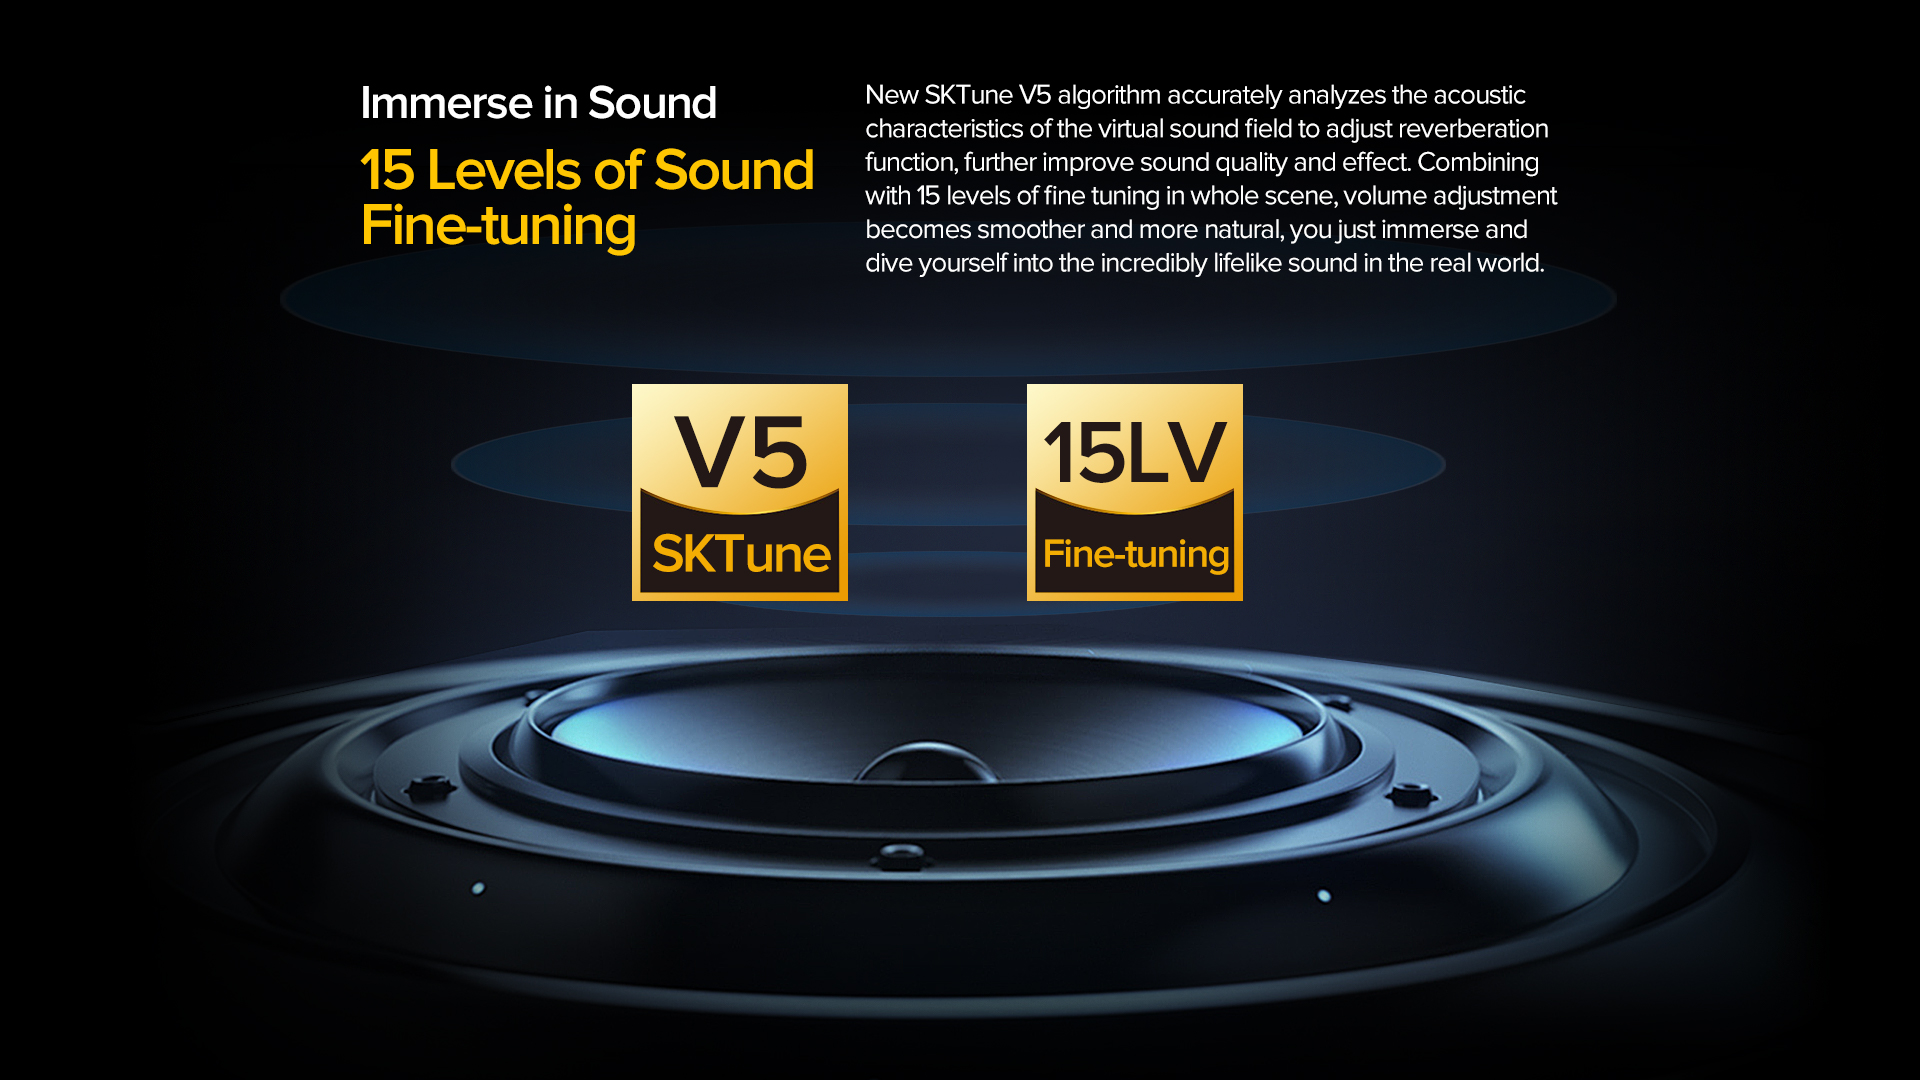 fine tuning sound features